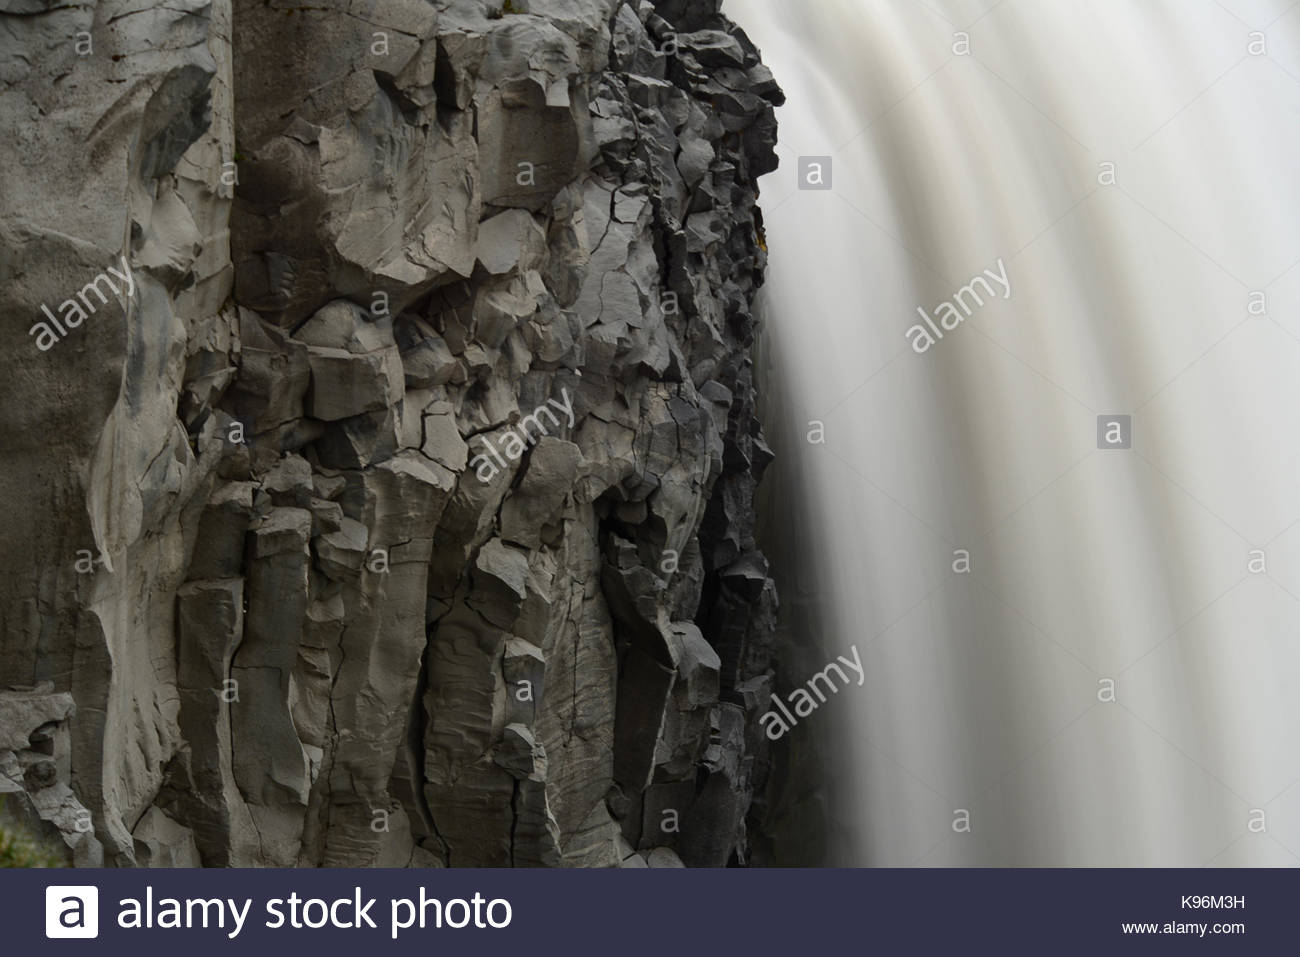 Detifoss Waterfall with basaltic columns. - Stock Image